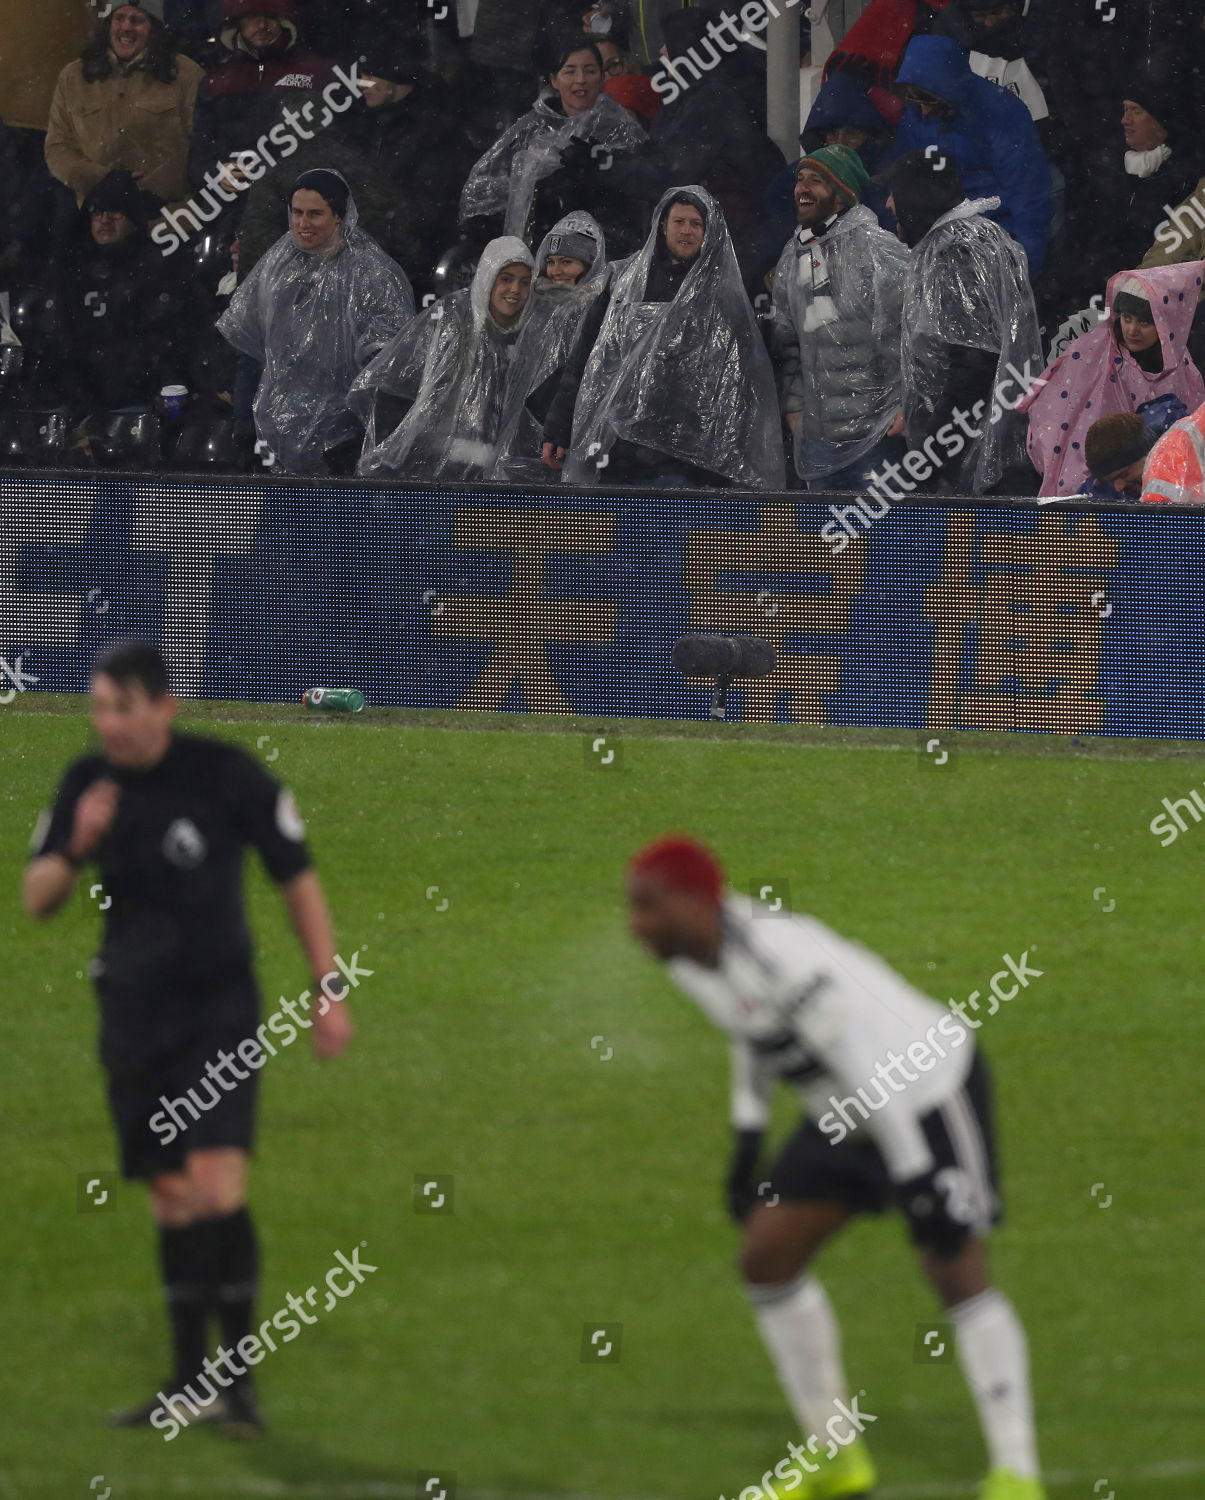 Fulham fans wearing rain ponchos Editorial Stock Photo